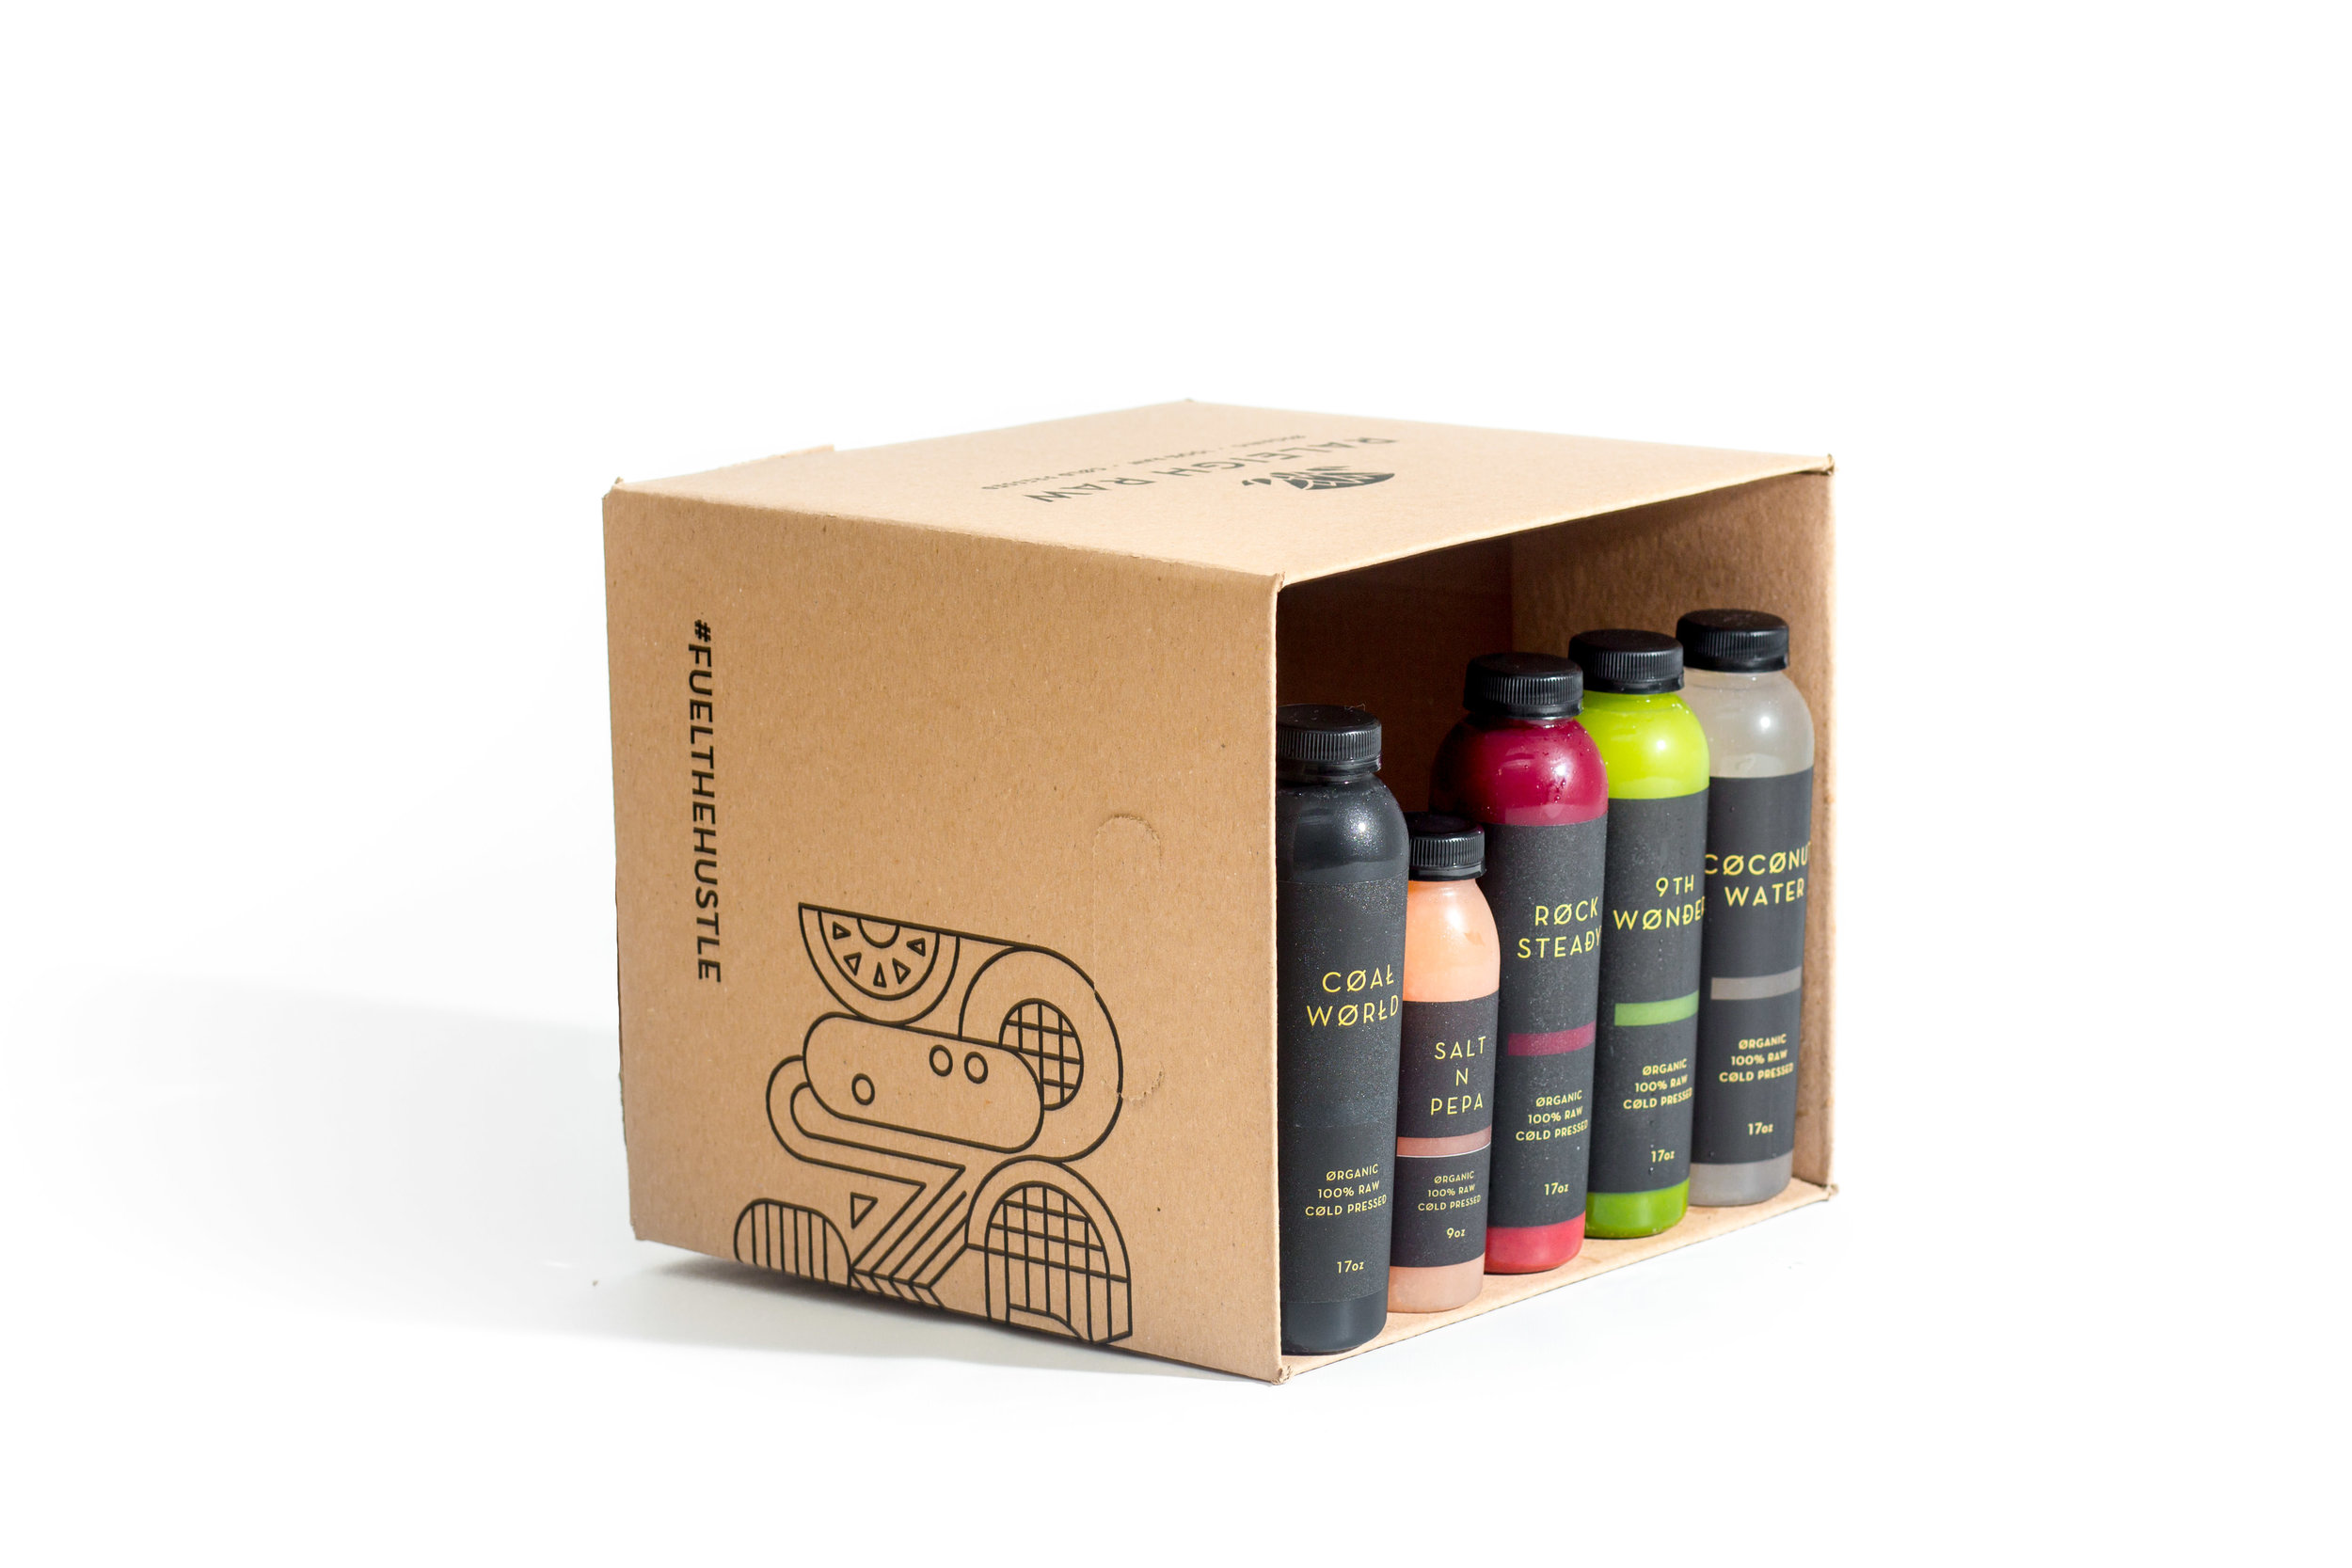 DETOX BOX - This box has concentration of nutrients designed to cleanse and detox the body - including liver and blood cleansing from beets, toxin removal with activated charcoal, and electrolyte replenishment from coconut water. Great for those who enjoy a late night out. Or those who are seeking a deep cleanse to really start fresh.